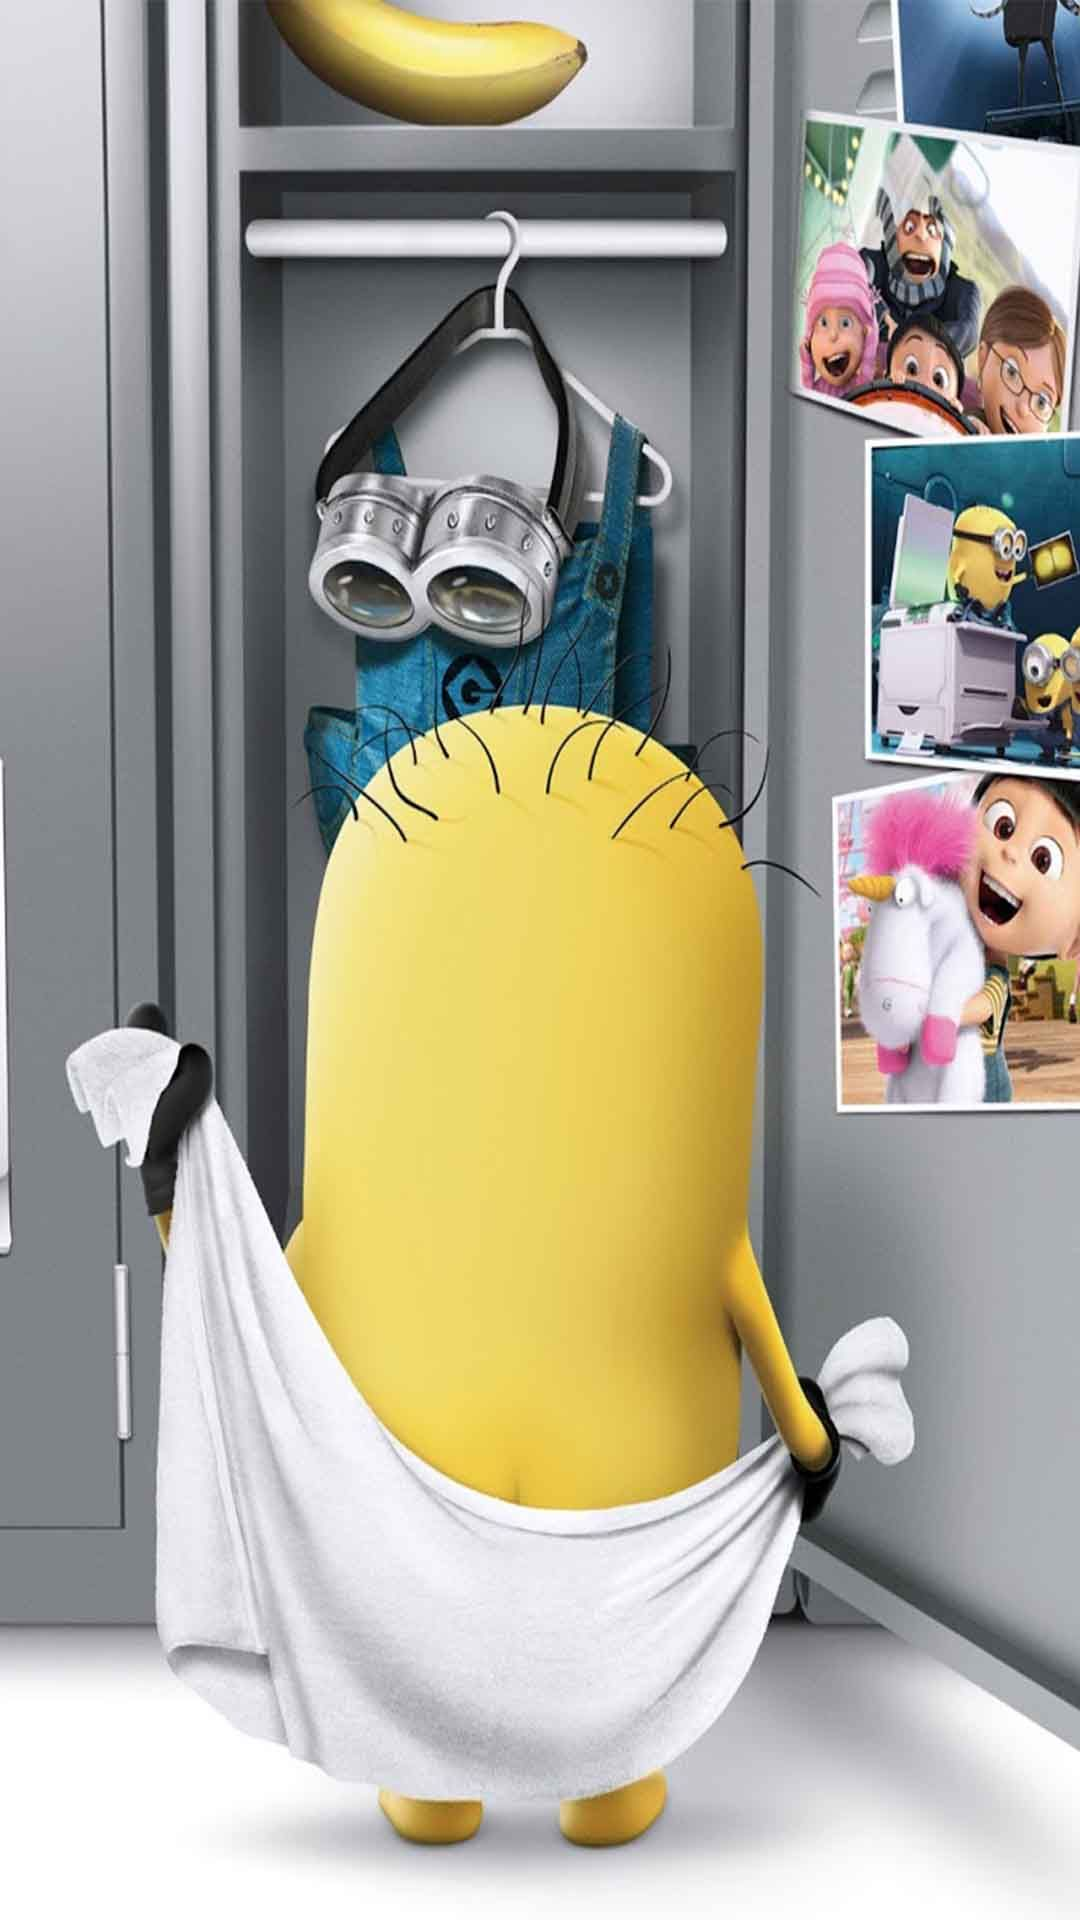 Minion Towel Iphone Wallpapers Minions Gathered Together To